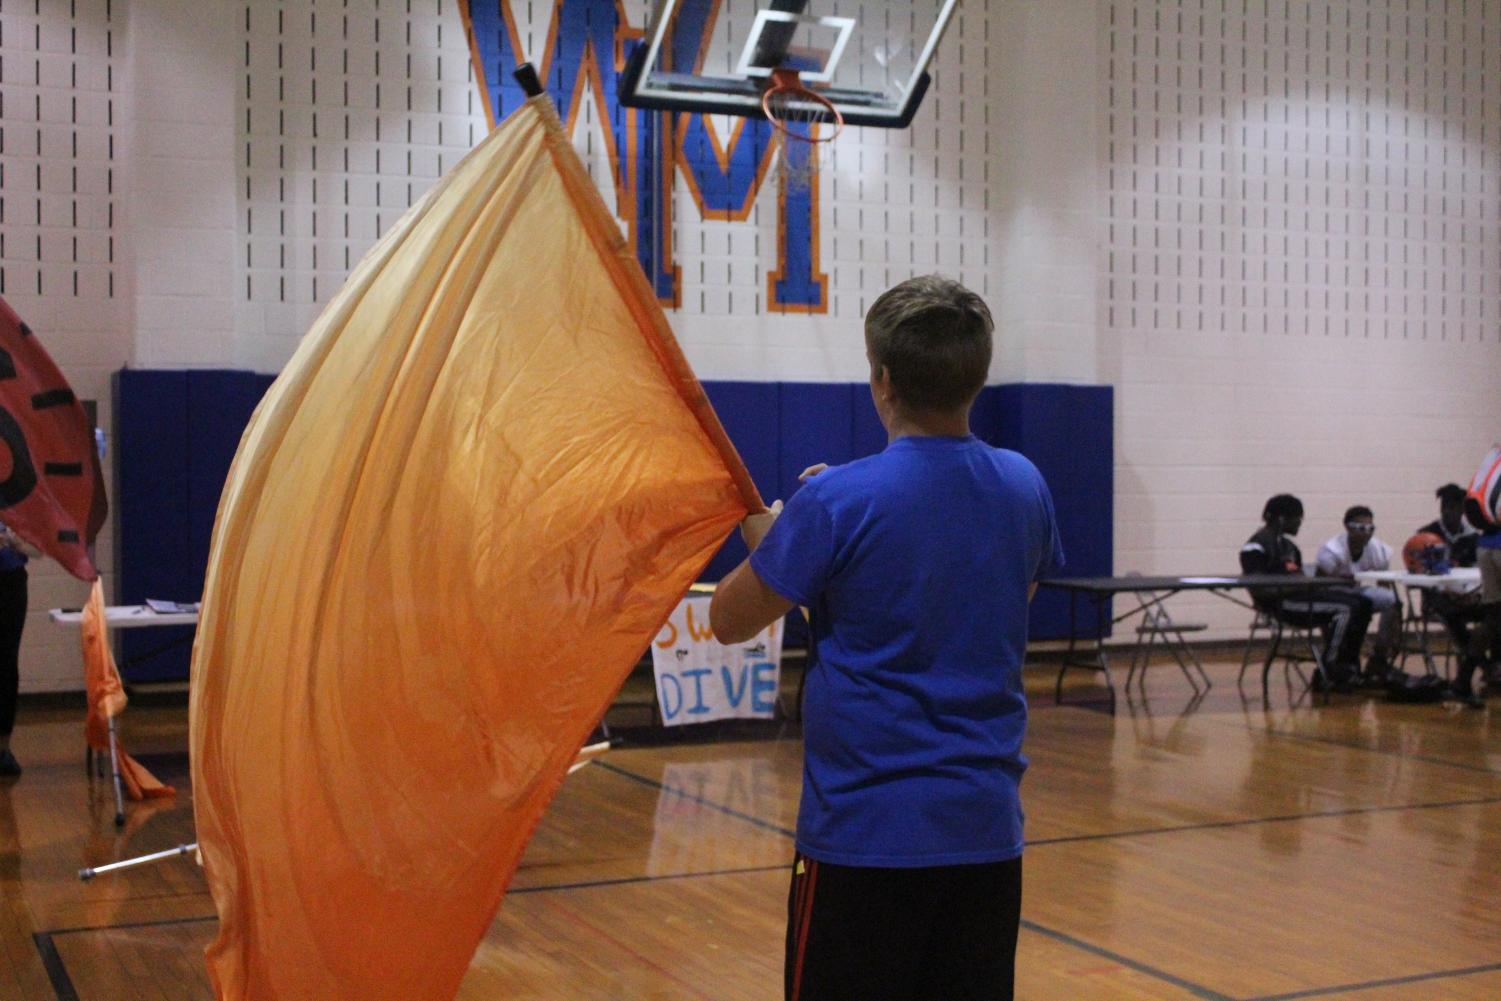 Junior+Ryan+Pranger+practices+with+his+flag+for+marching+band+before+the+Extracurricular+Activities+Fair.